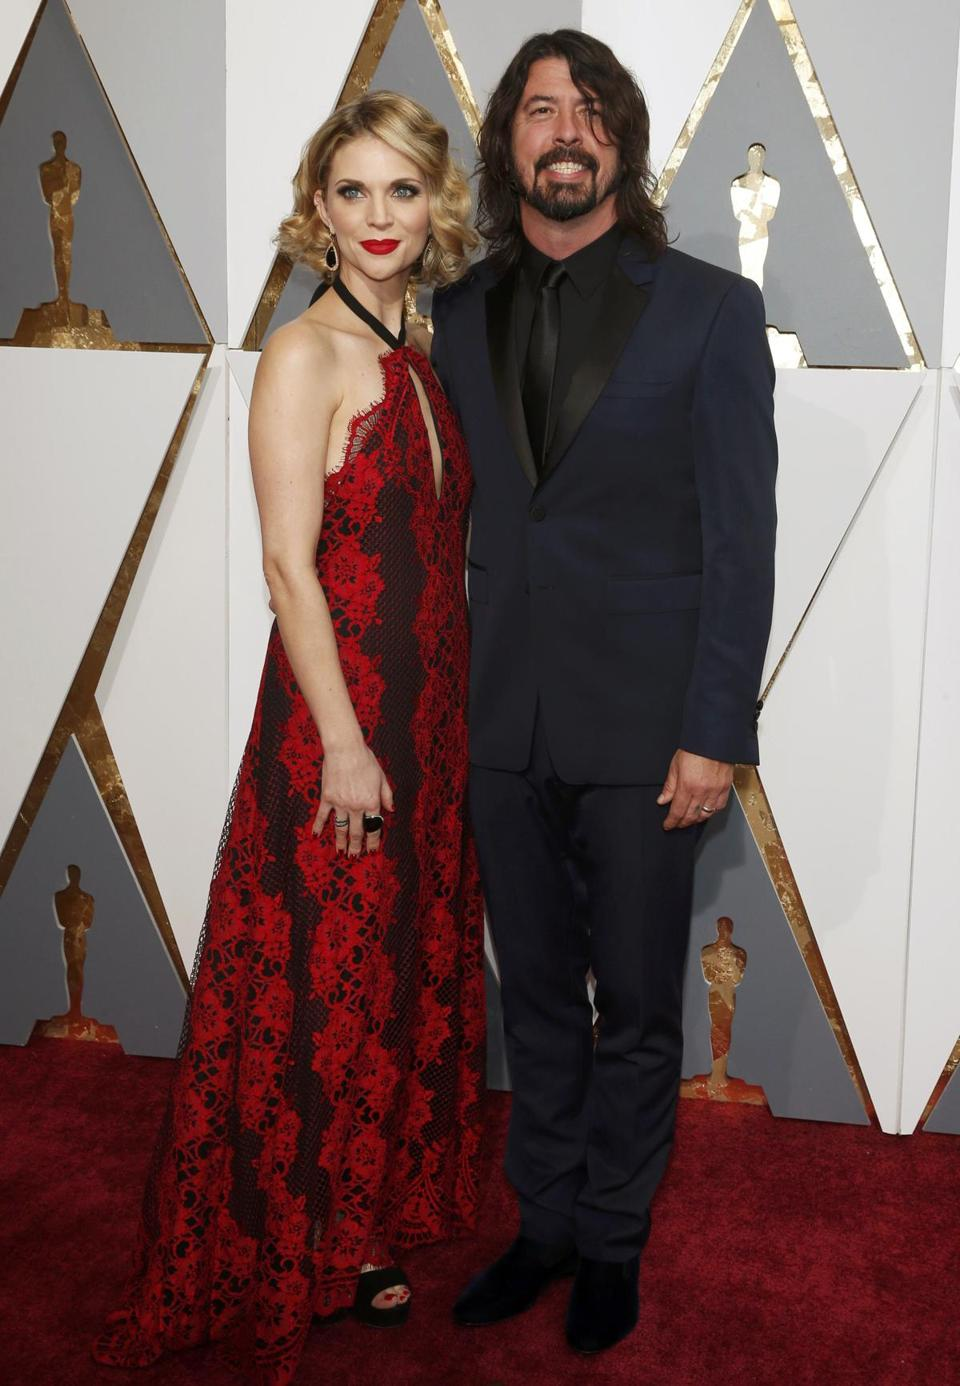 Dave Grohl of the Foo Fighters and wife Jordyn Blum.